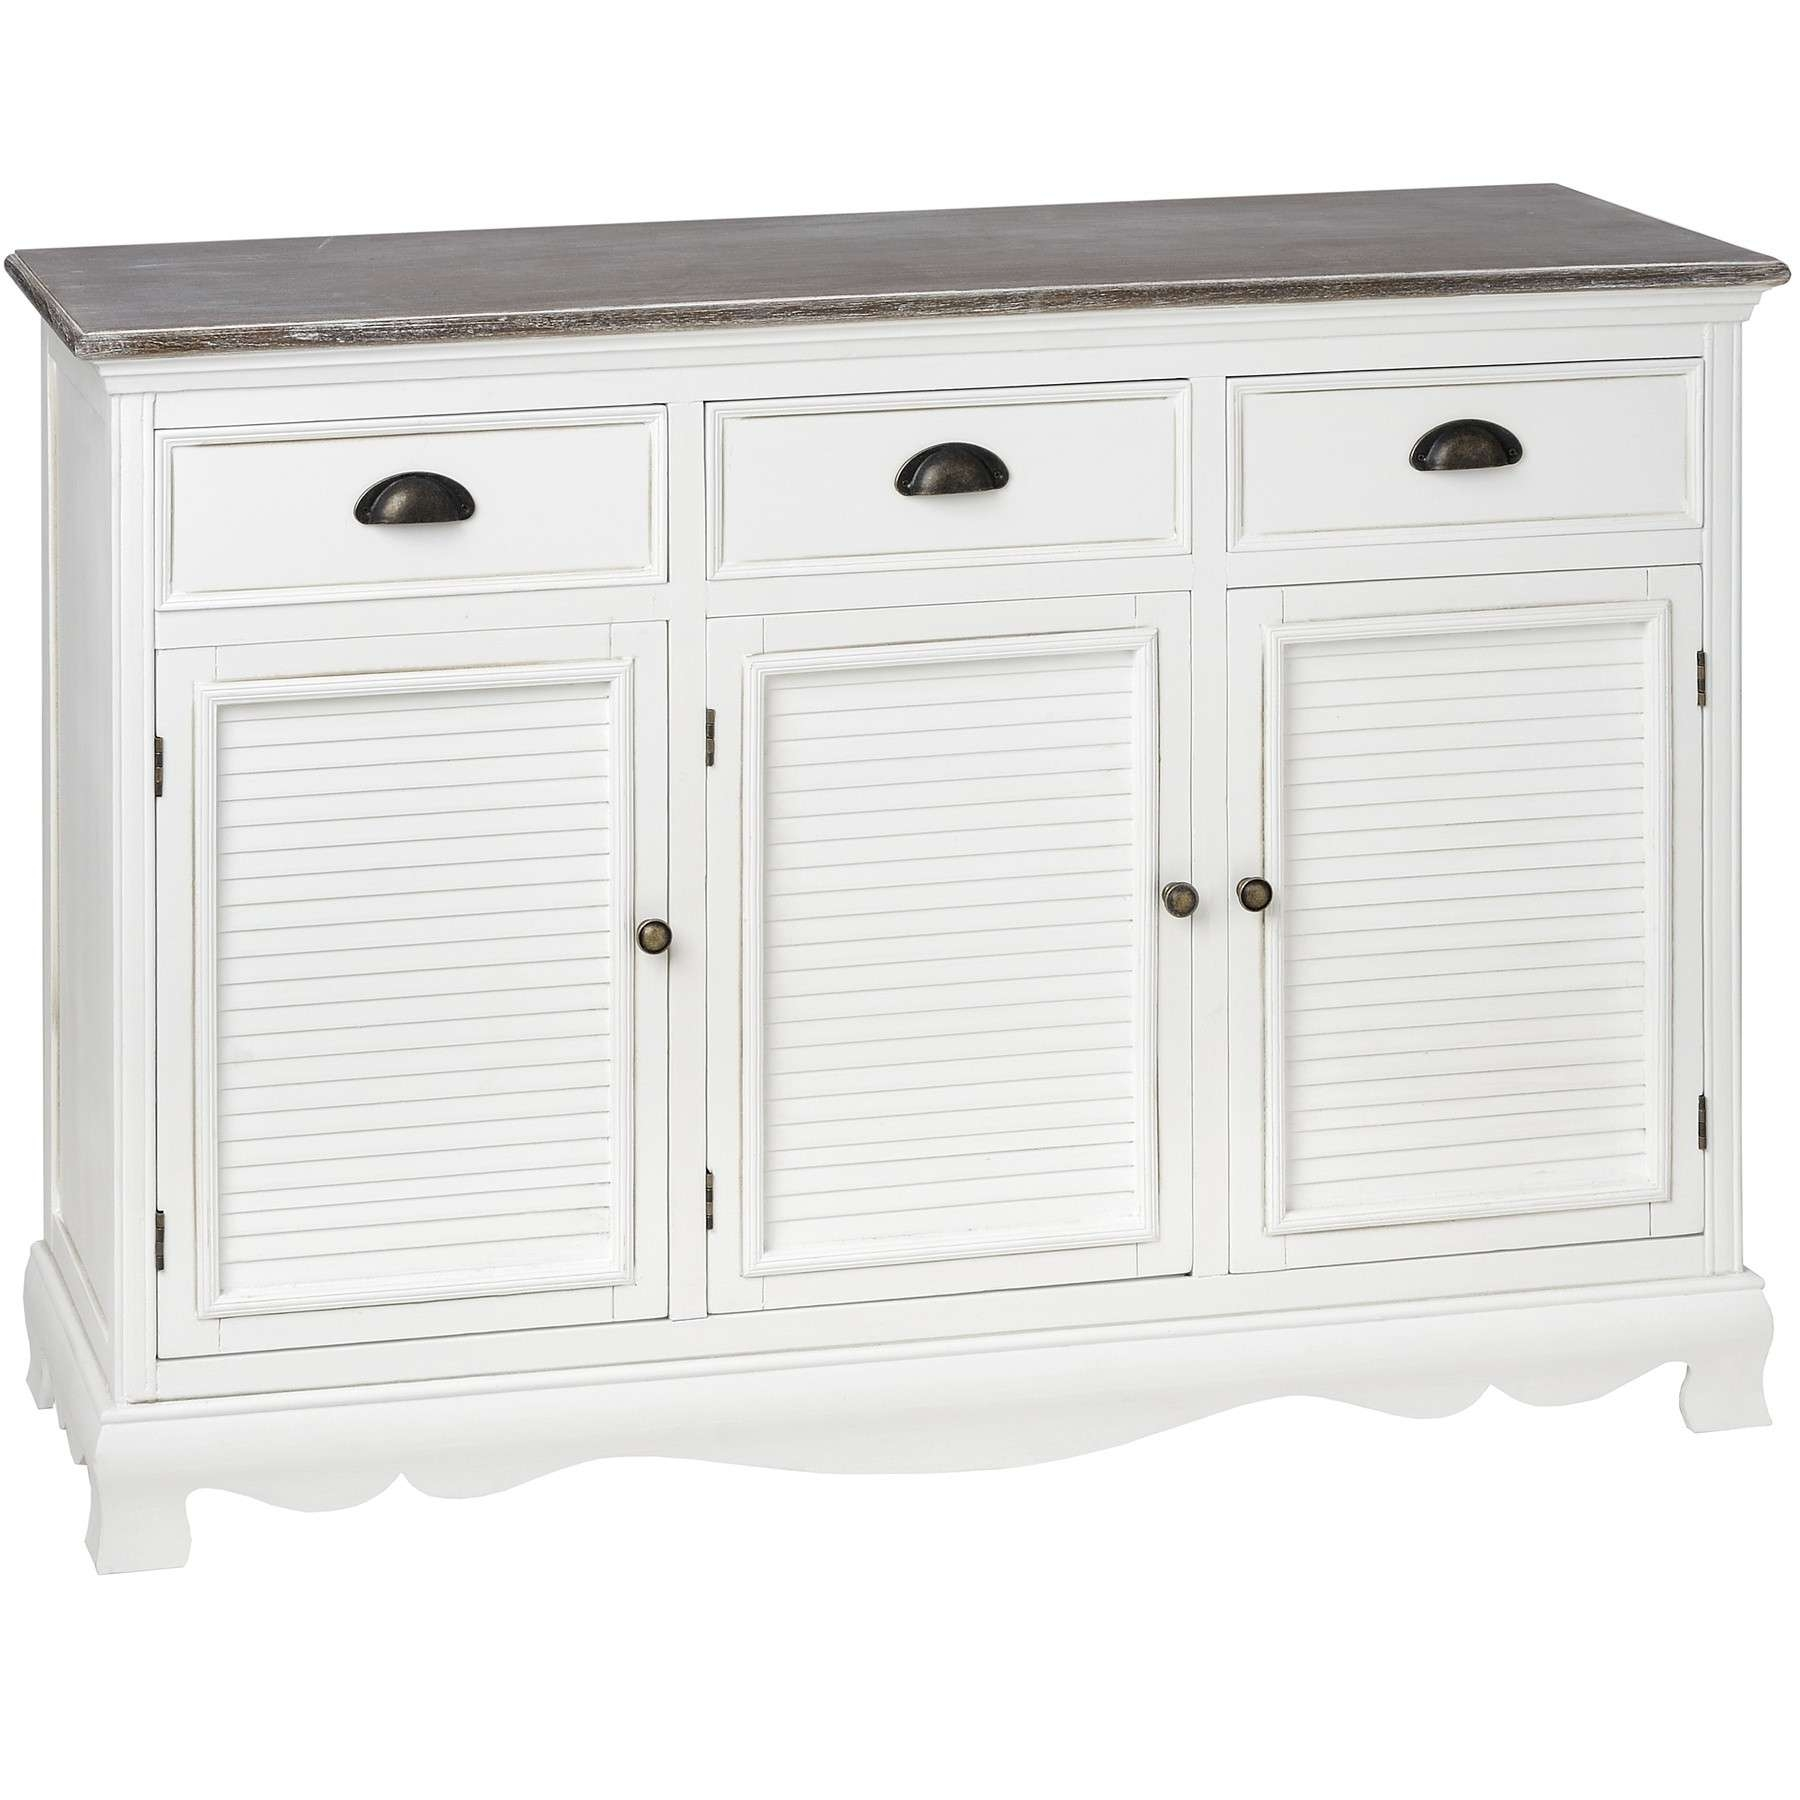 Louisiana Large White Sideboard With 3 Doors| Bedroom Furniture Direct For Large White Sideboards (View 6 of 20)